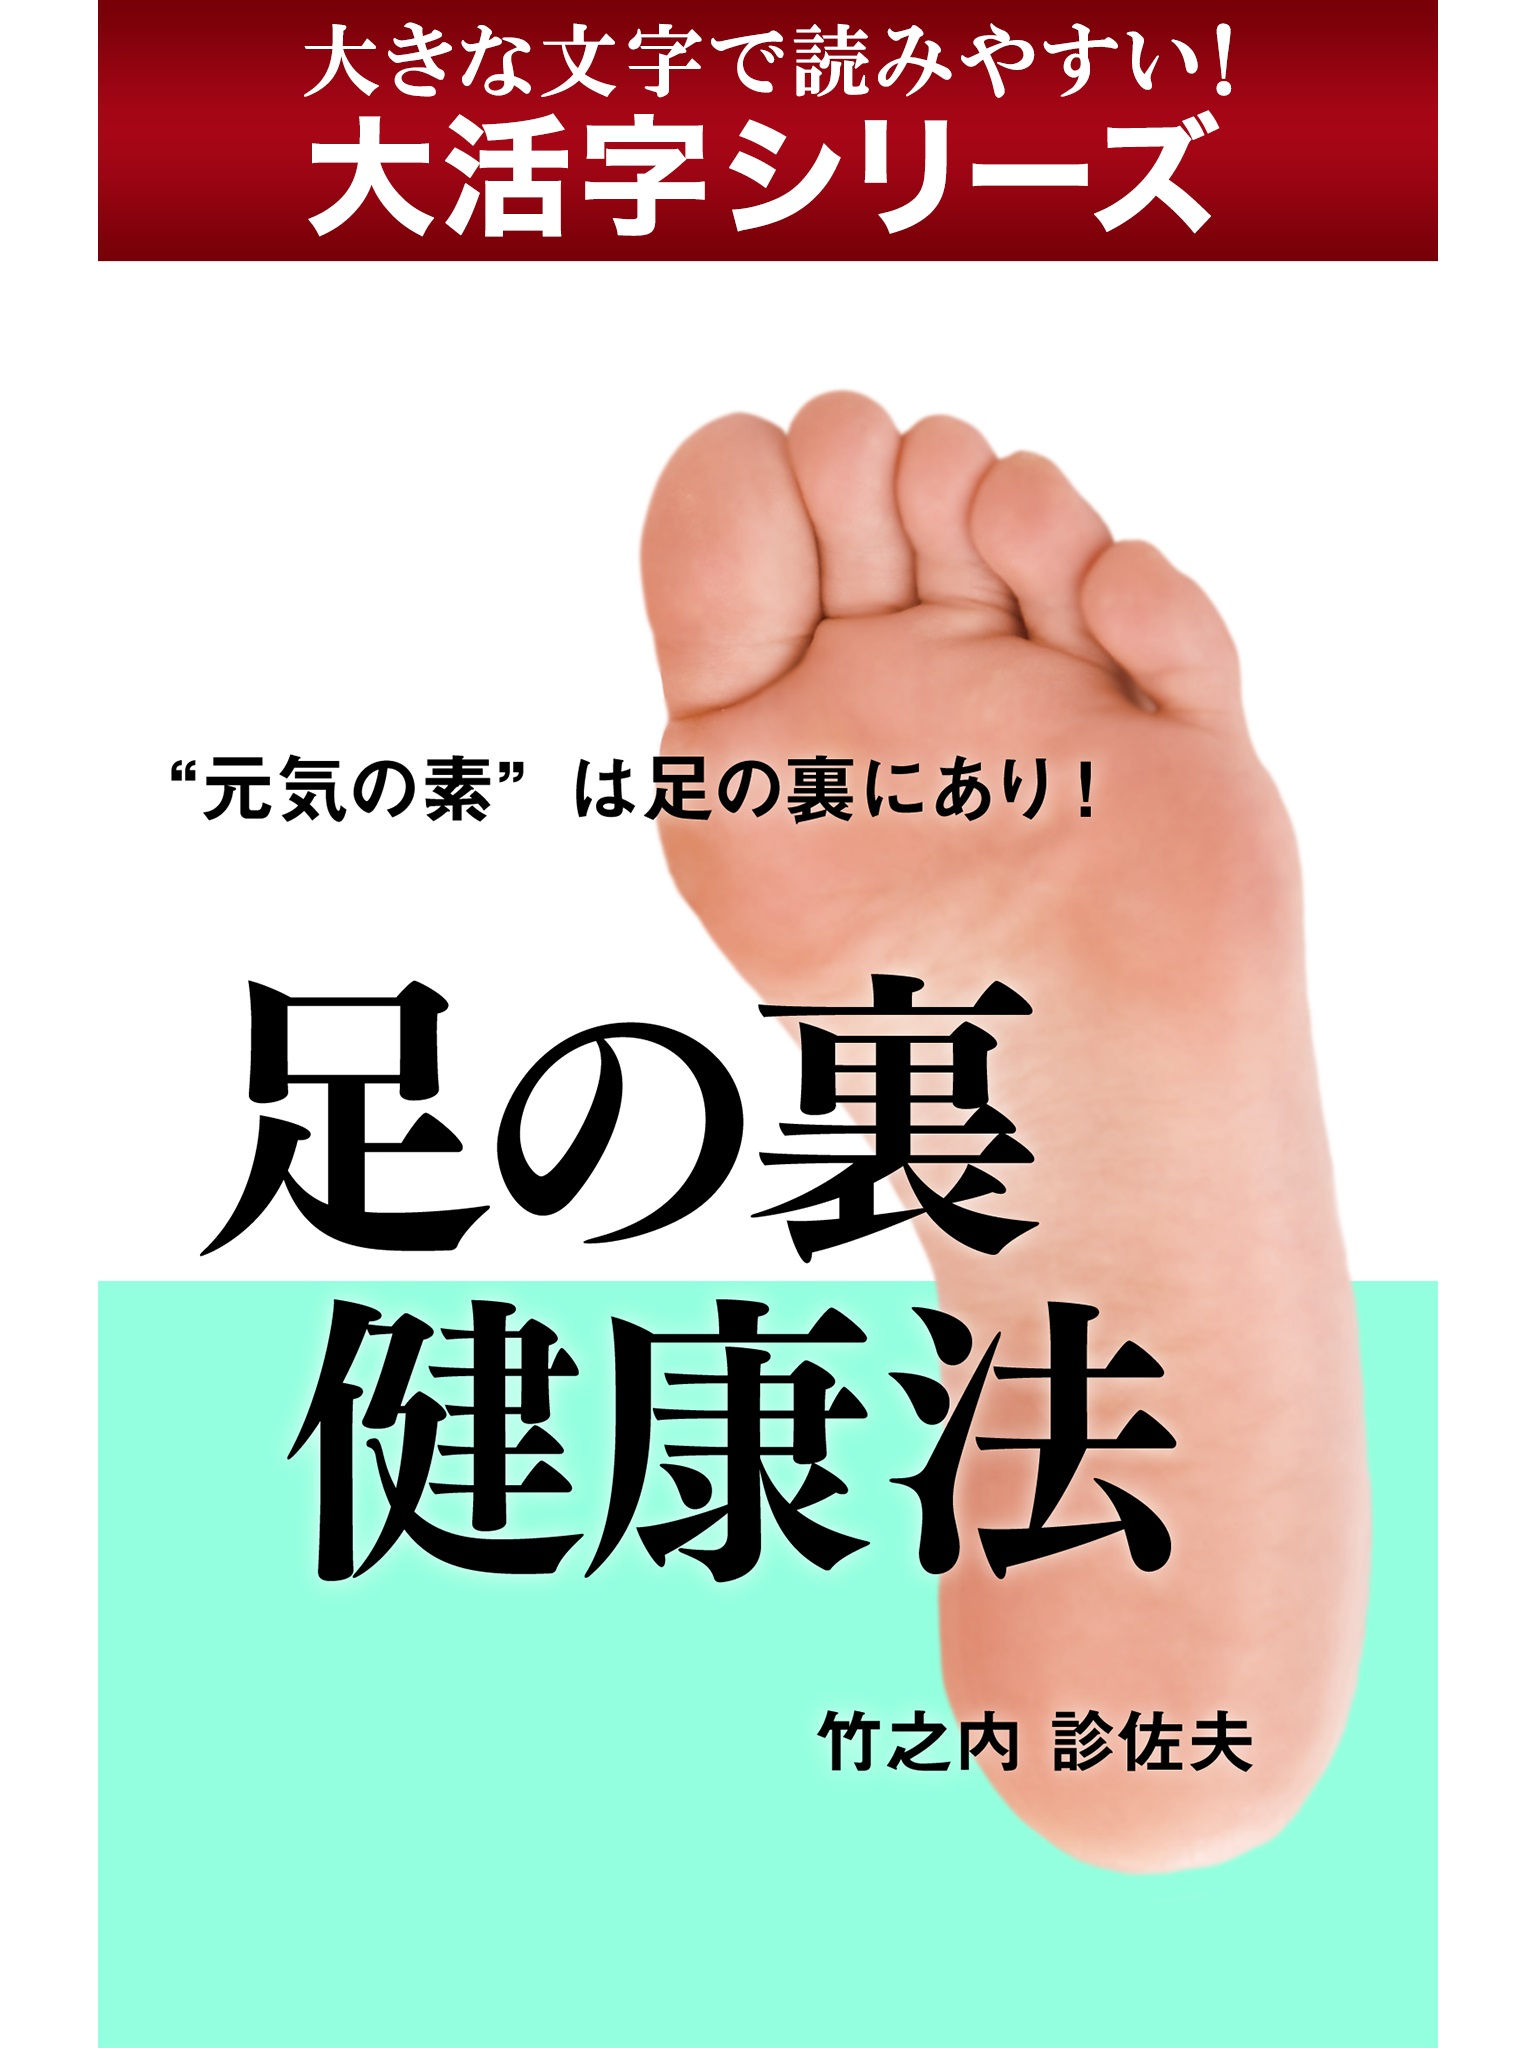 【androidkindle端末対応 大活字シリーズ】足の裏健康法